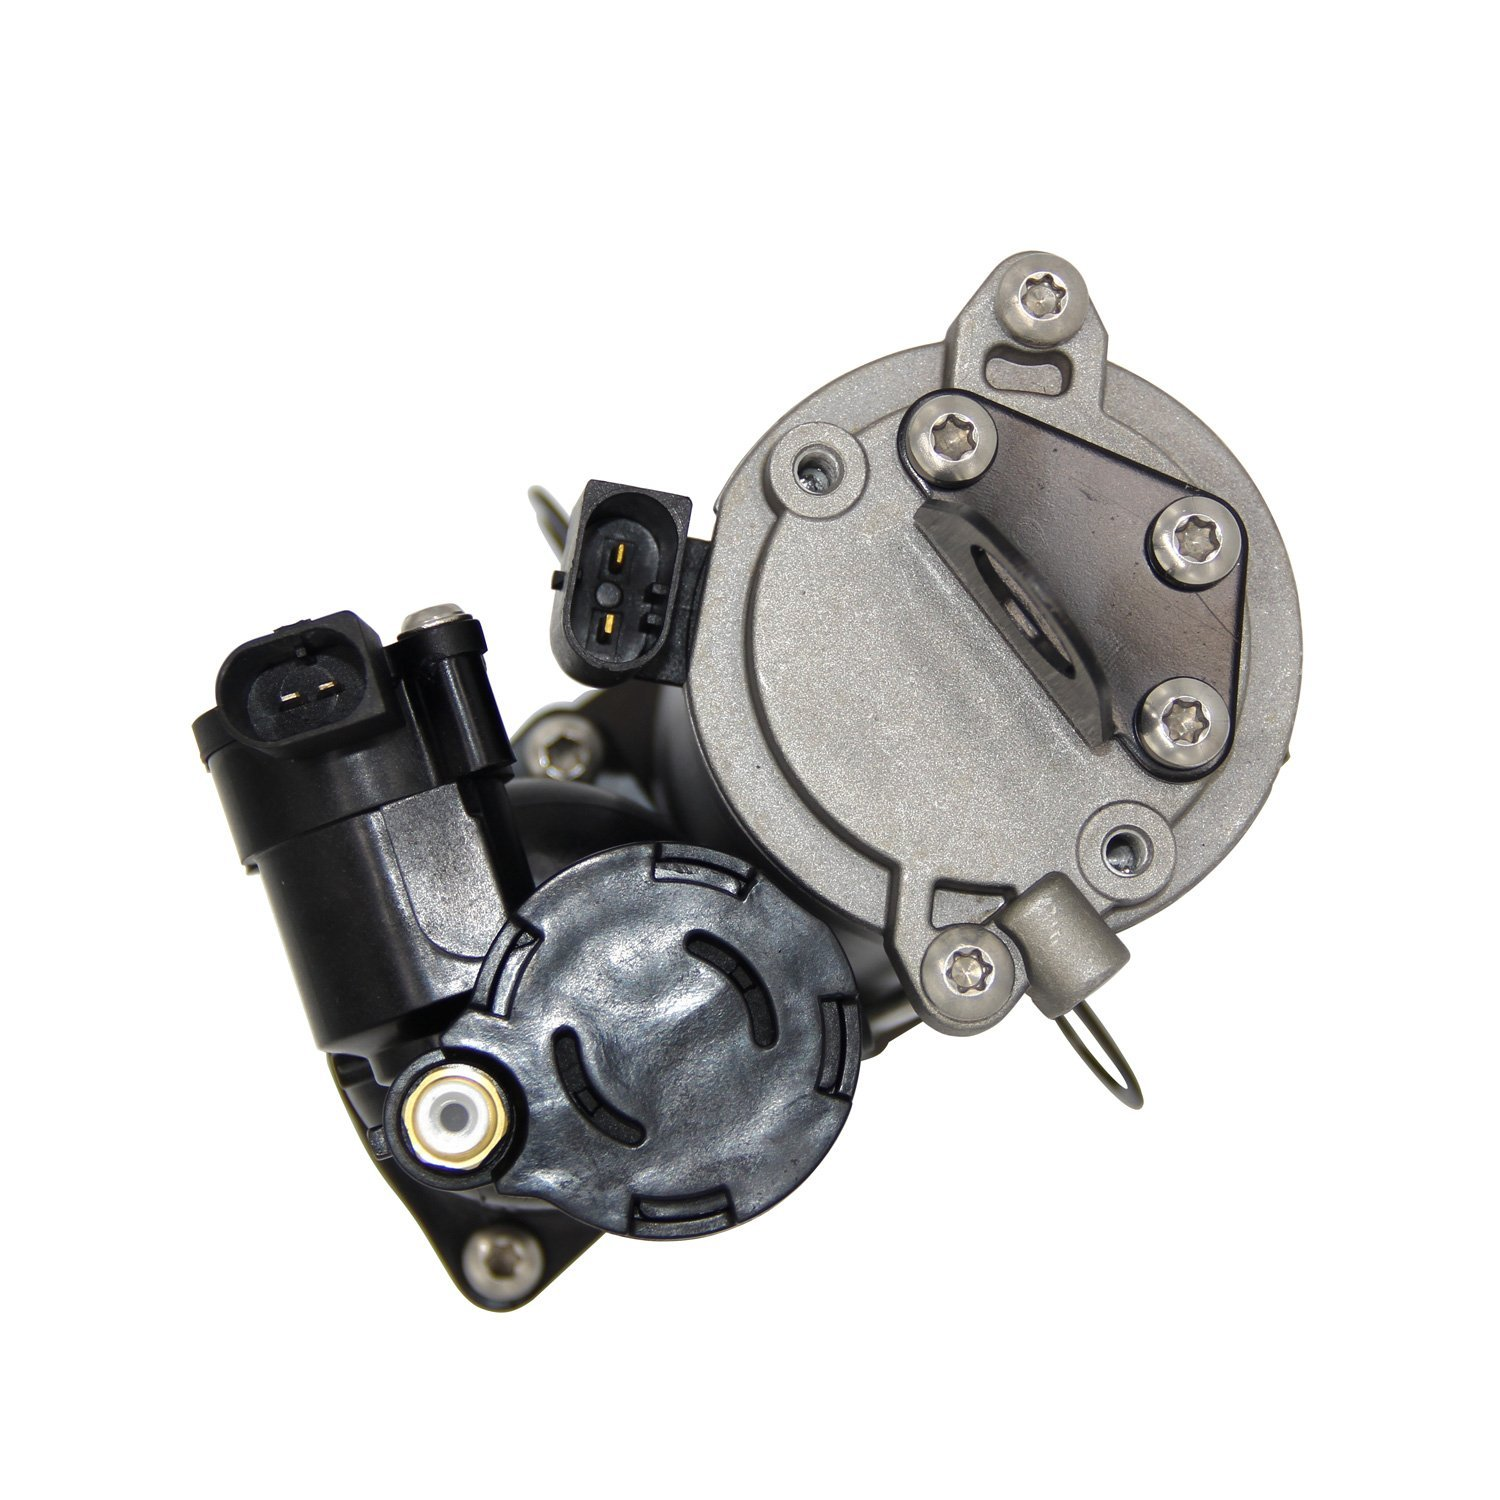 Engine Cooling & Climate Control AUTEX Manual HVAC Blower Motor ...